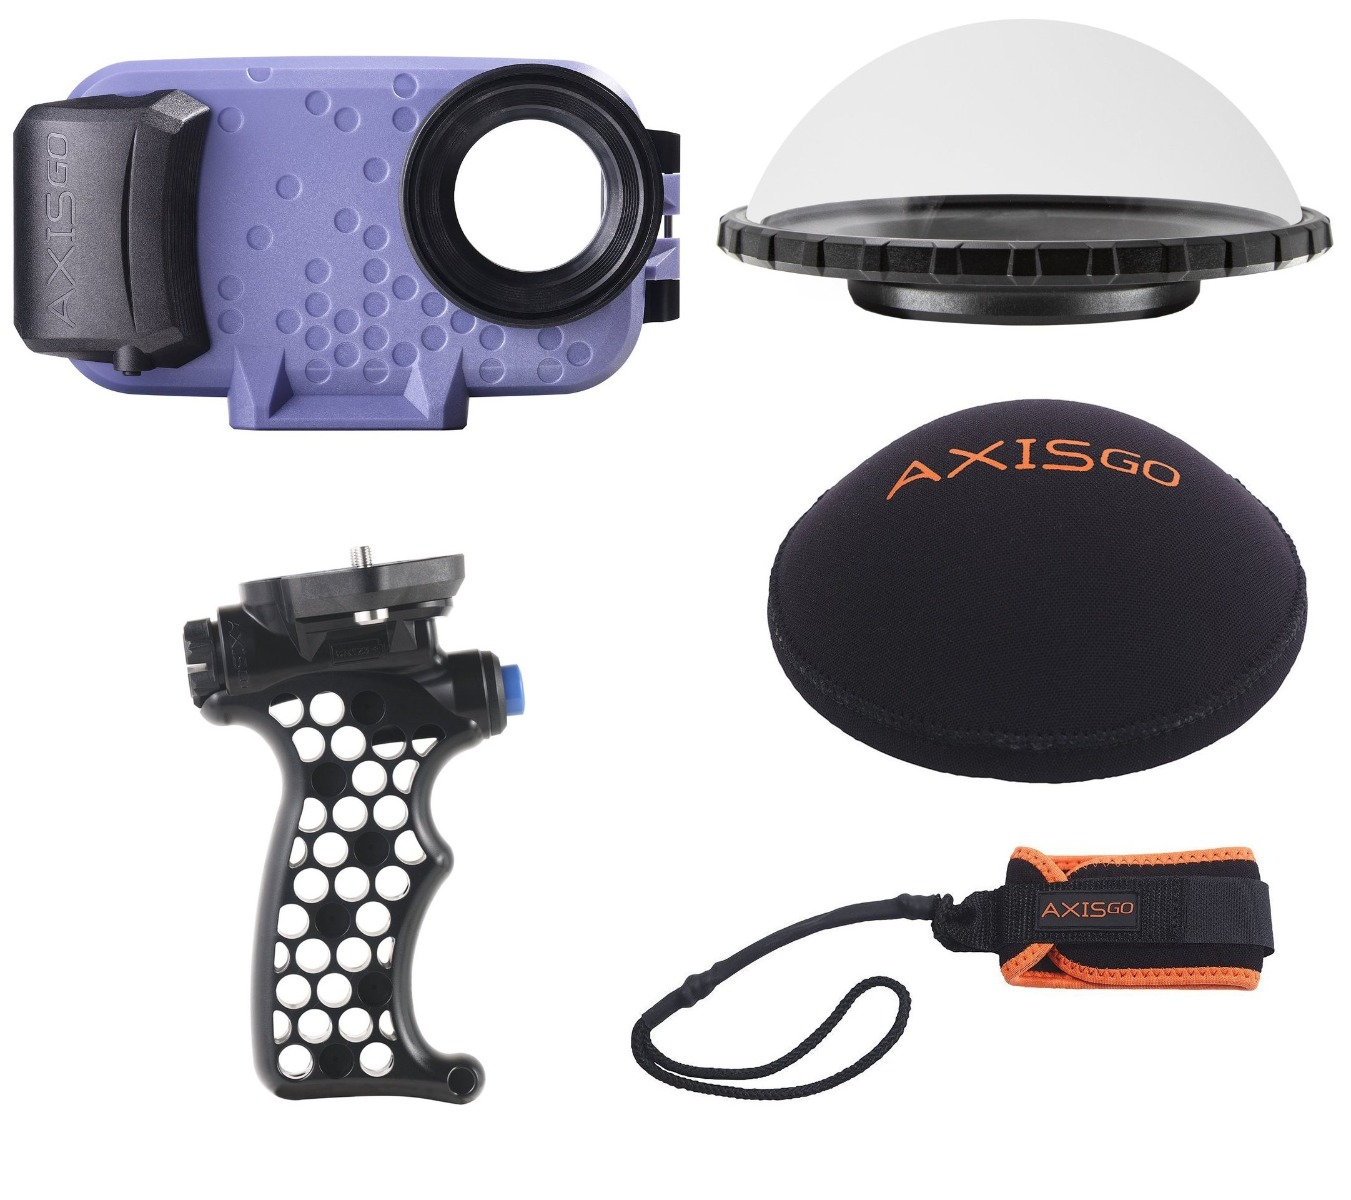 AxisGO iPhone 12 Series - Over Under Kit